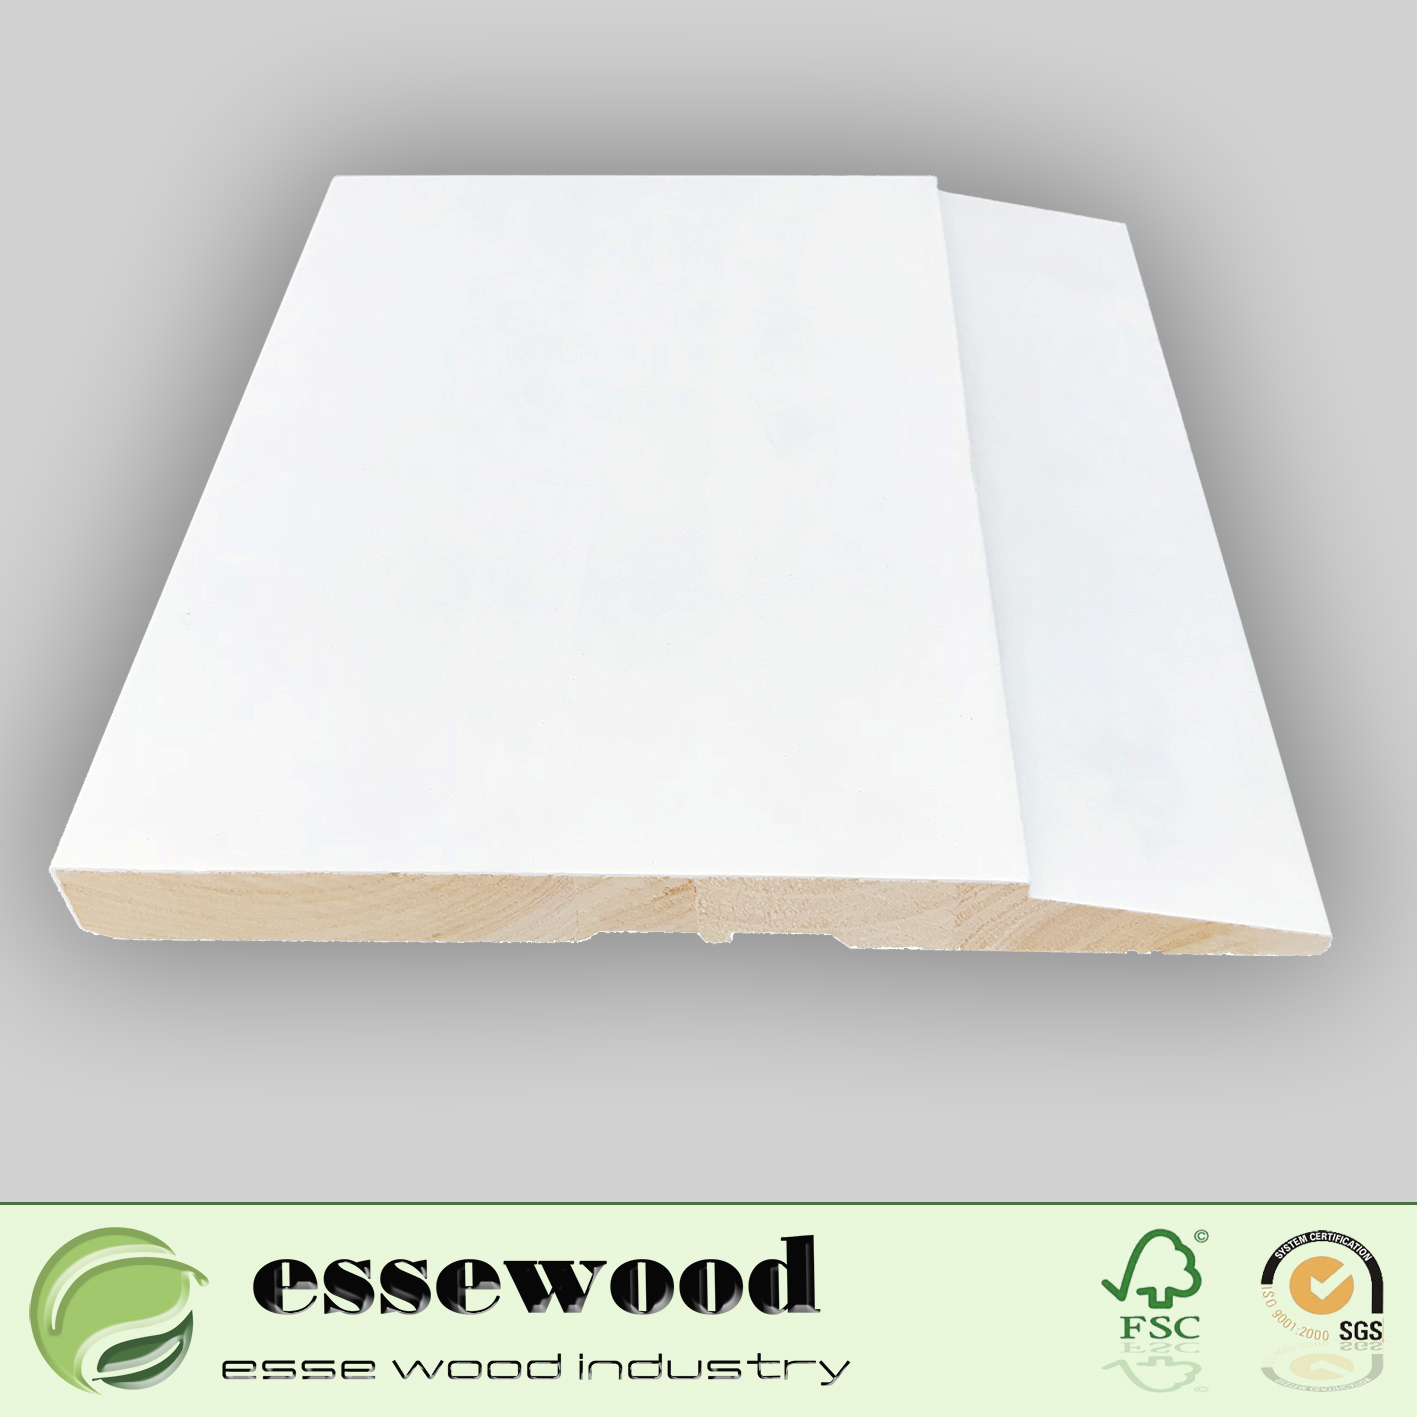 Gesso Wood Moulding Flooring Accessories Bseboard for Wall Skirting on Sale